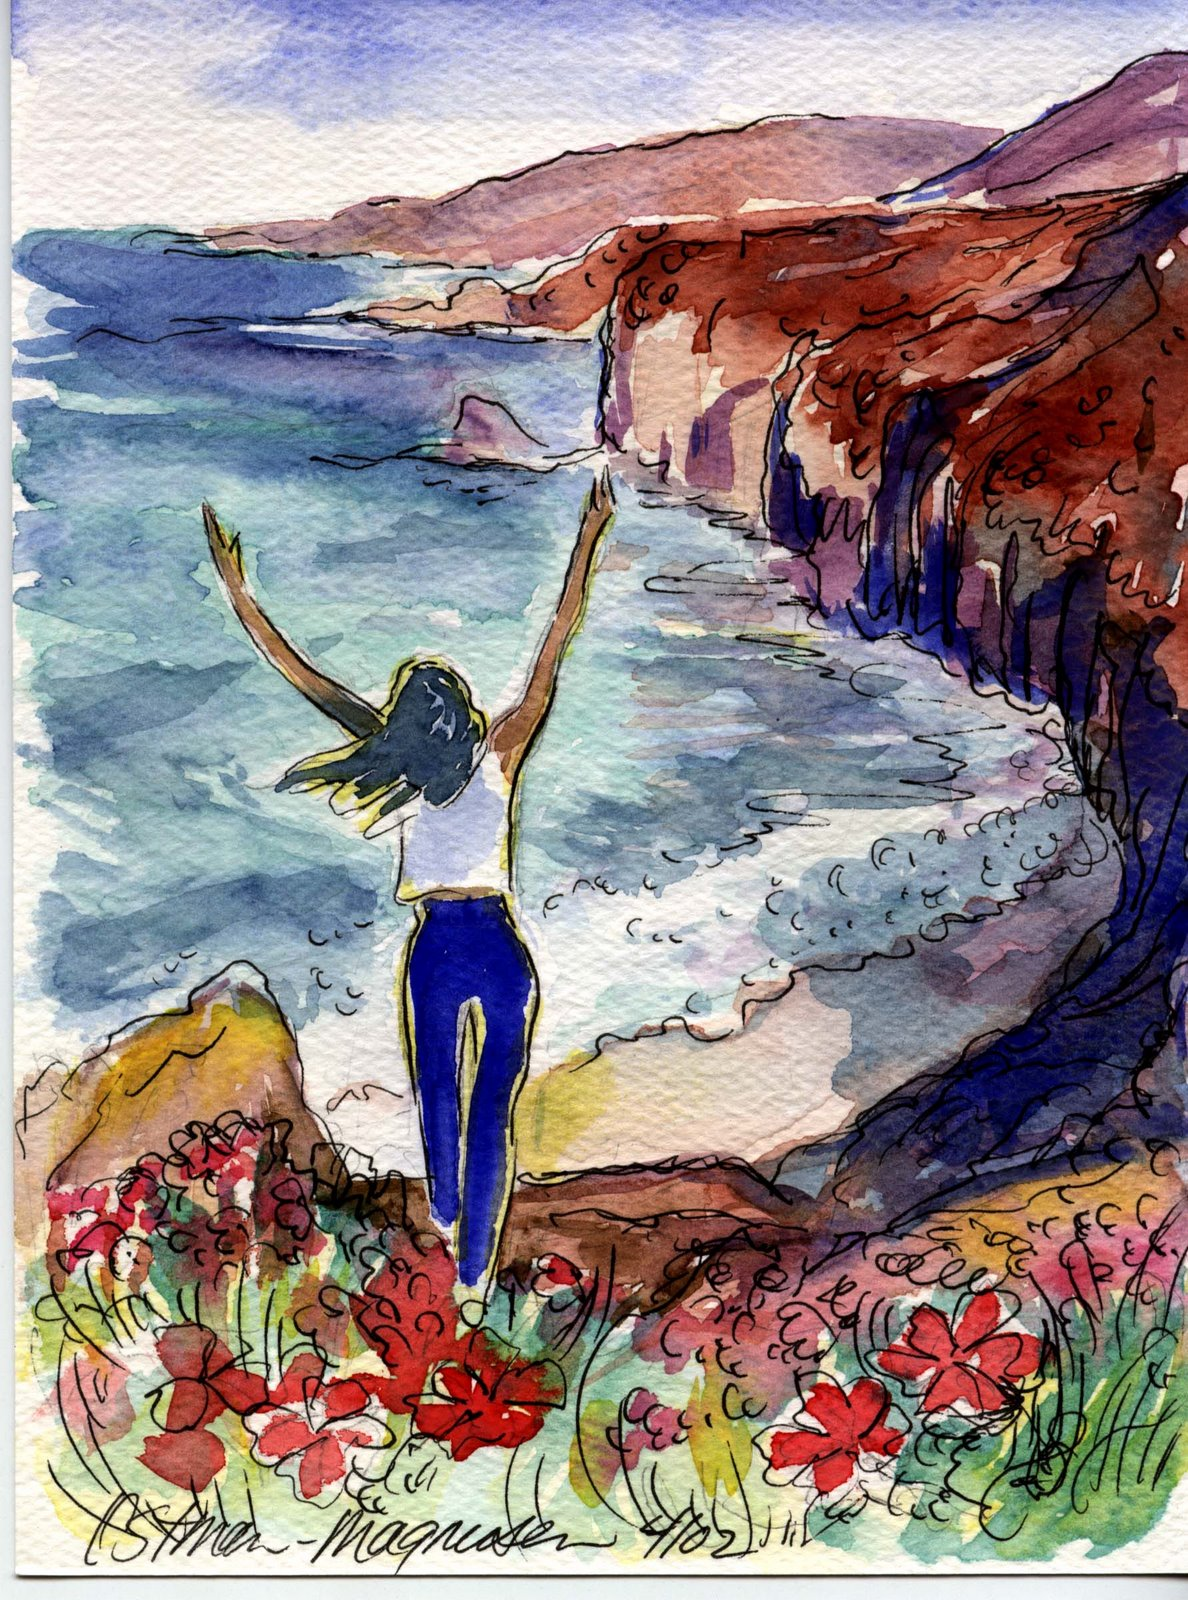 Hawaiian Art Prints Posters People-watercolors 6x8